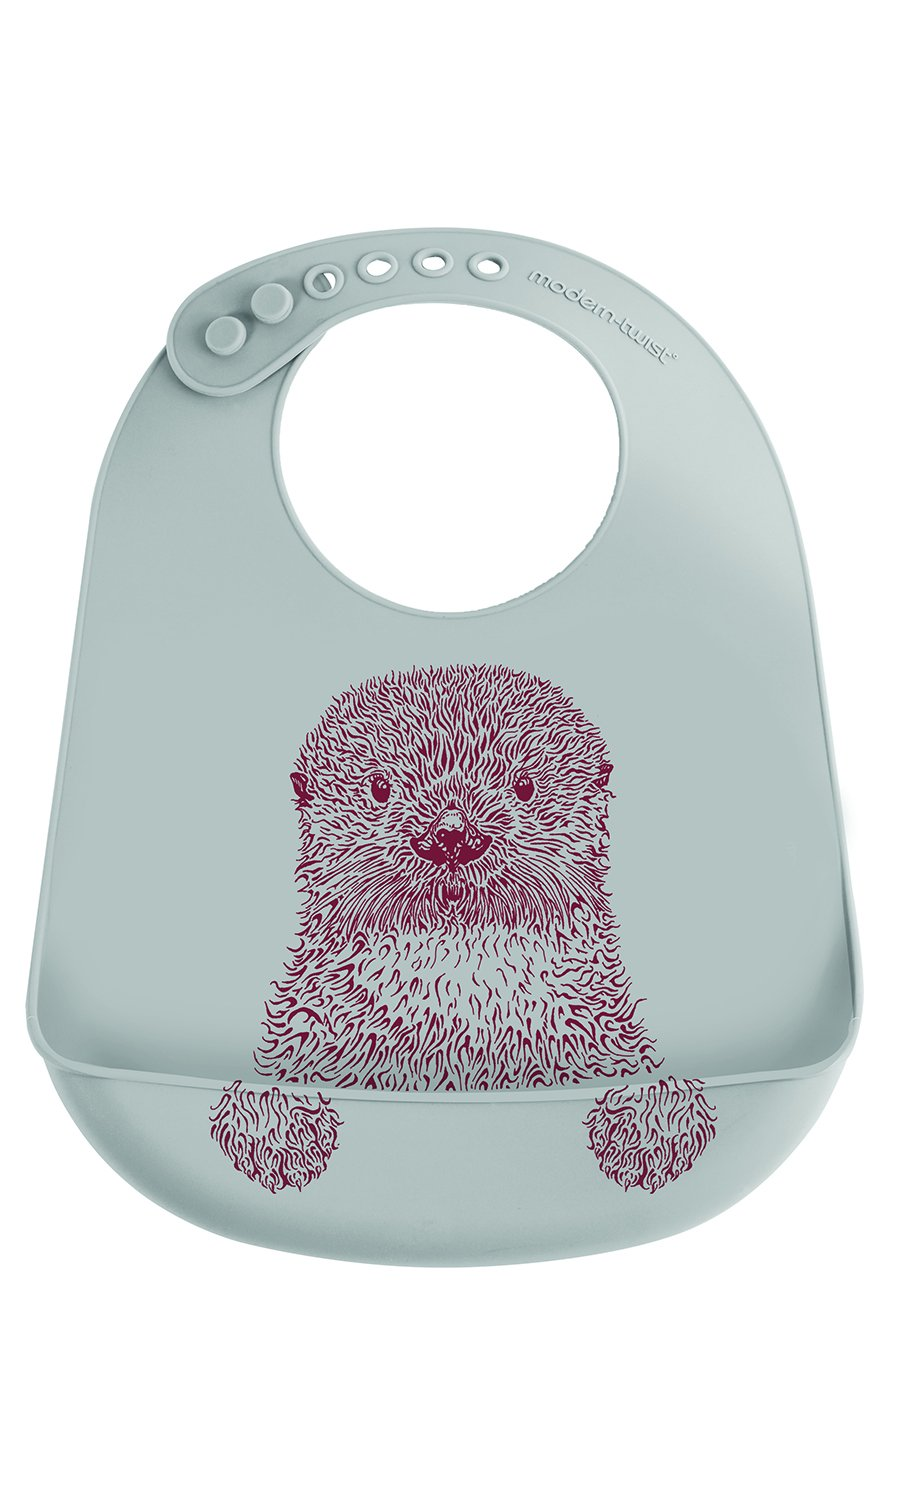 modern-twist Sloth Waterproof Silicone Baby Bucket Bib with Adjustable Strap, Plastic Free, Wipe Clean and Dishwasher Safe, Grey Modern Twist BB20